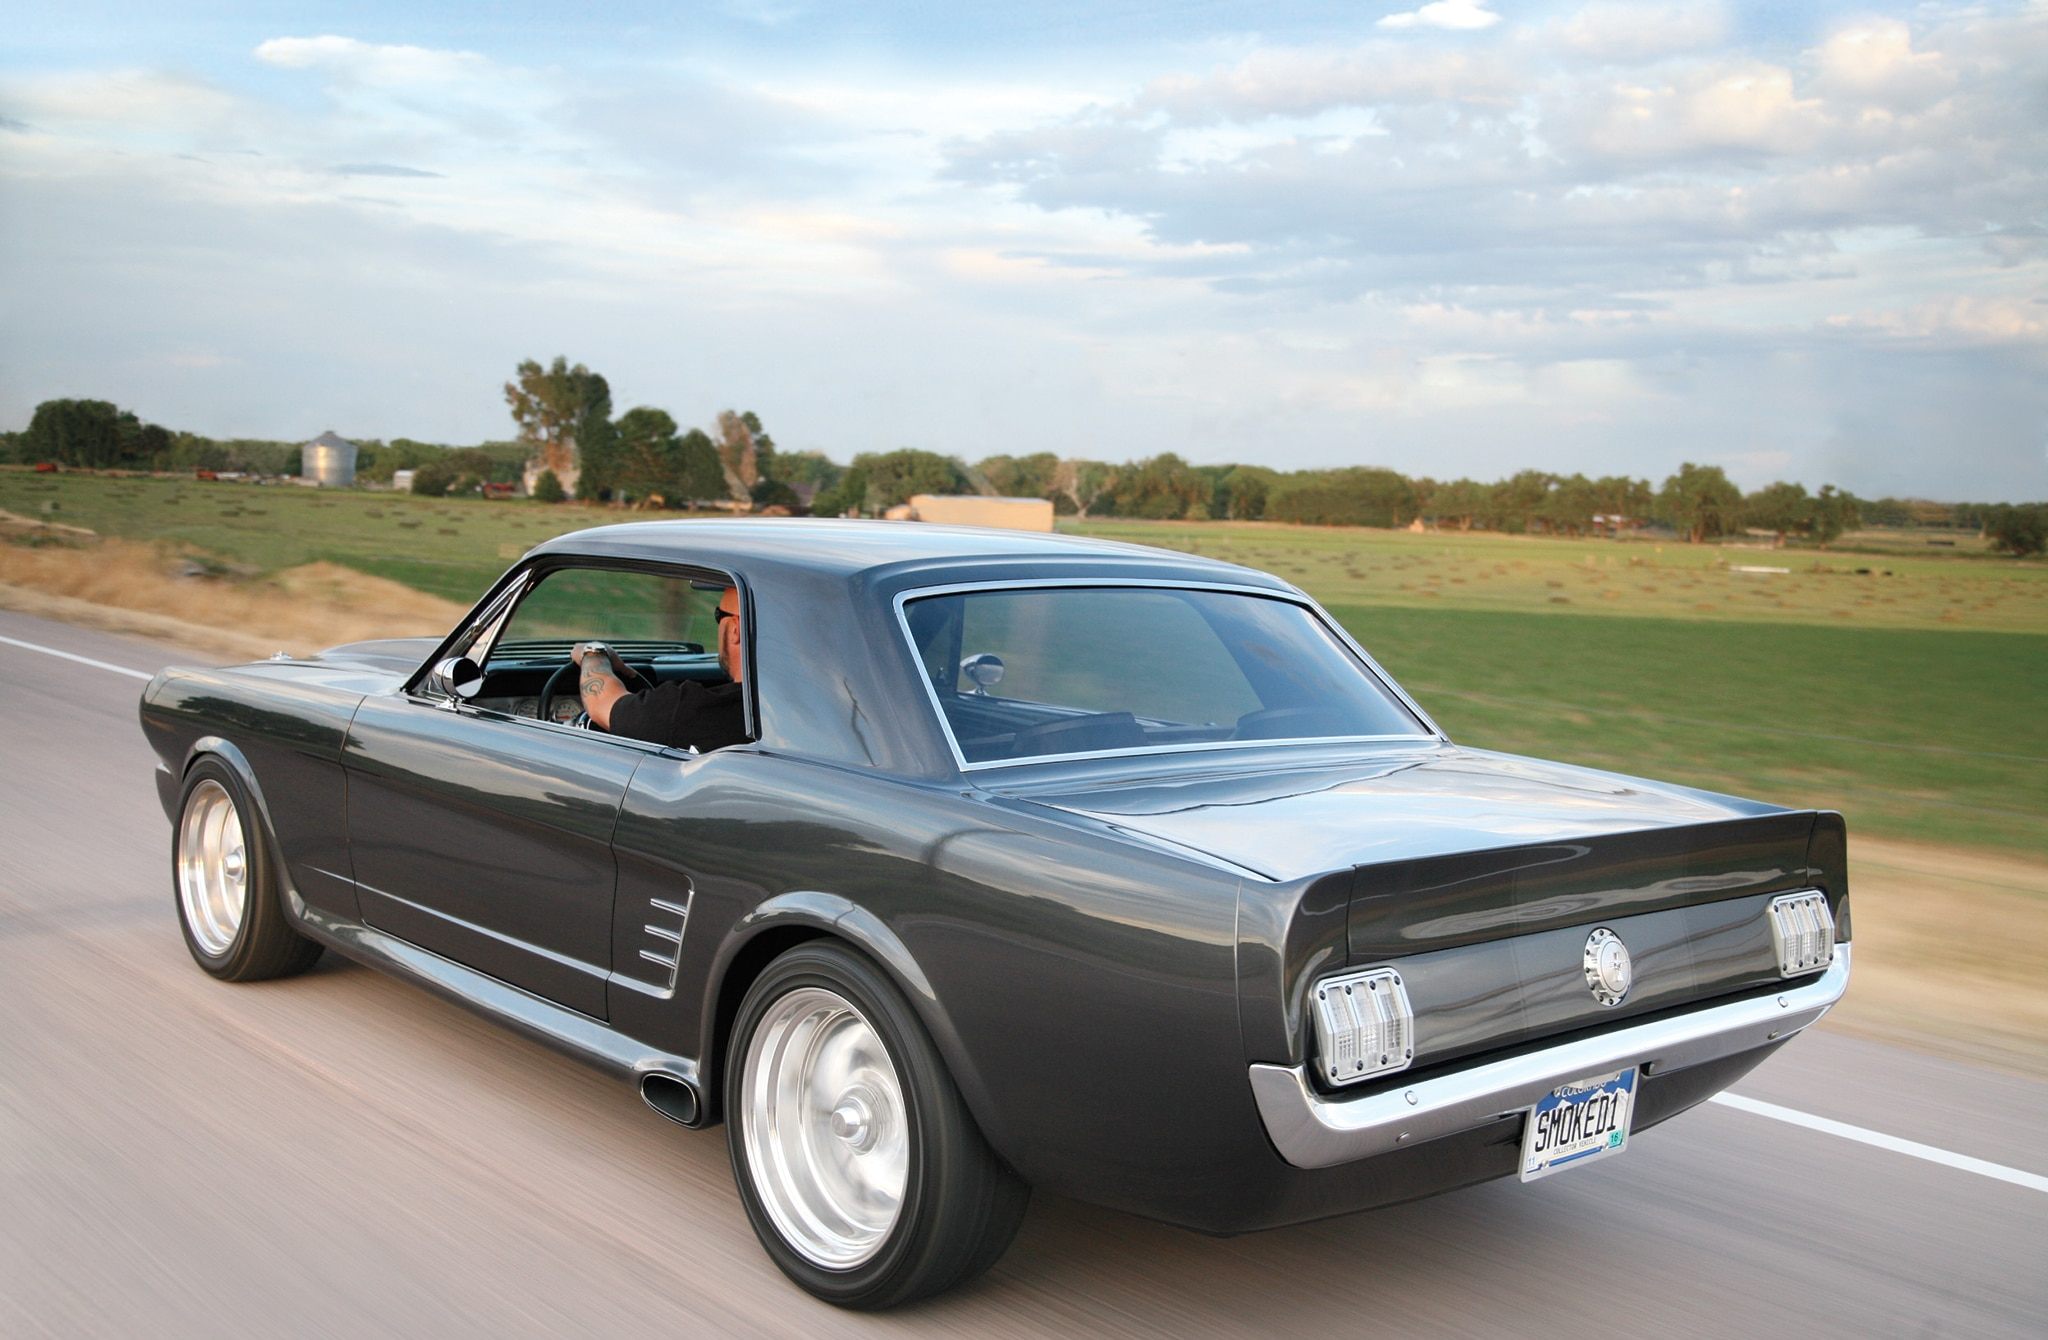 1966 Ford Mustang Coupe Rear Side View